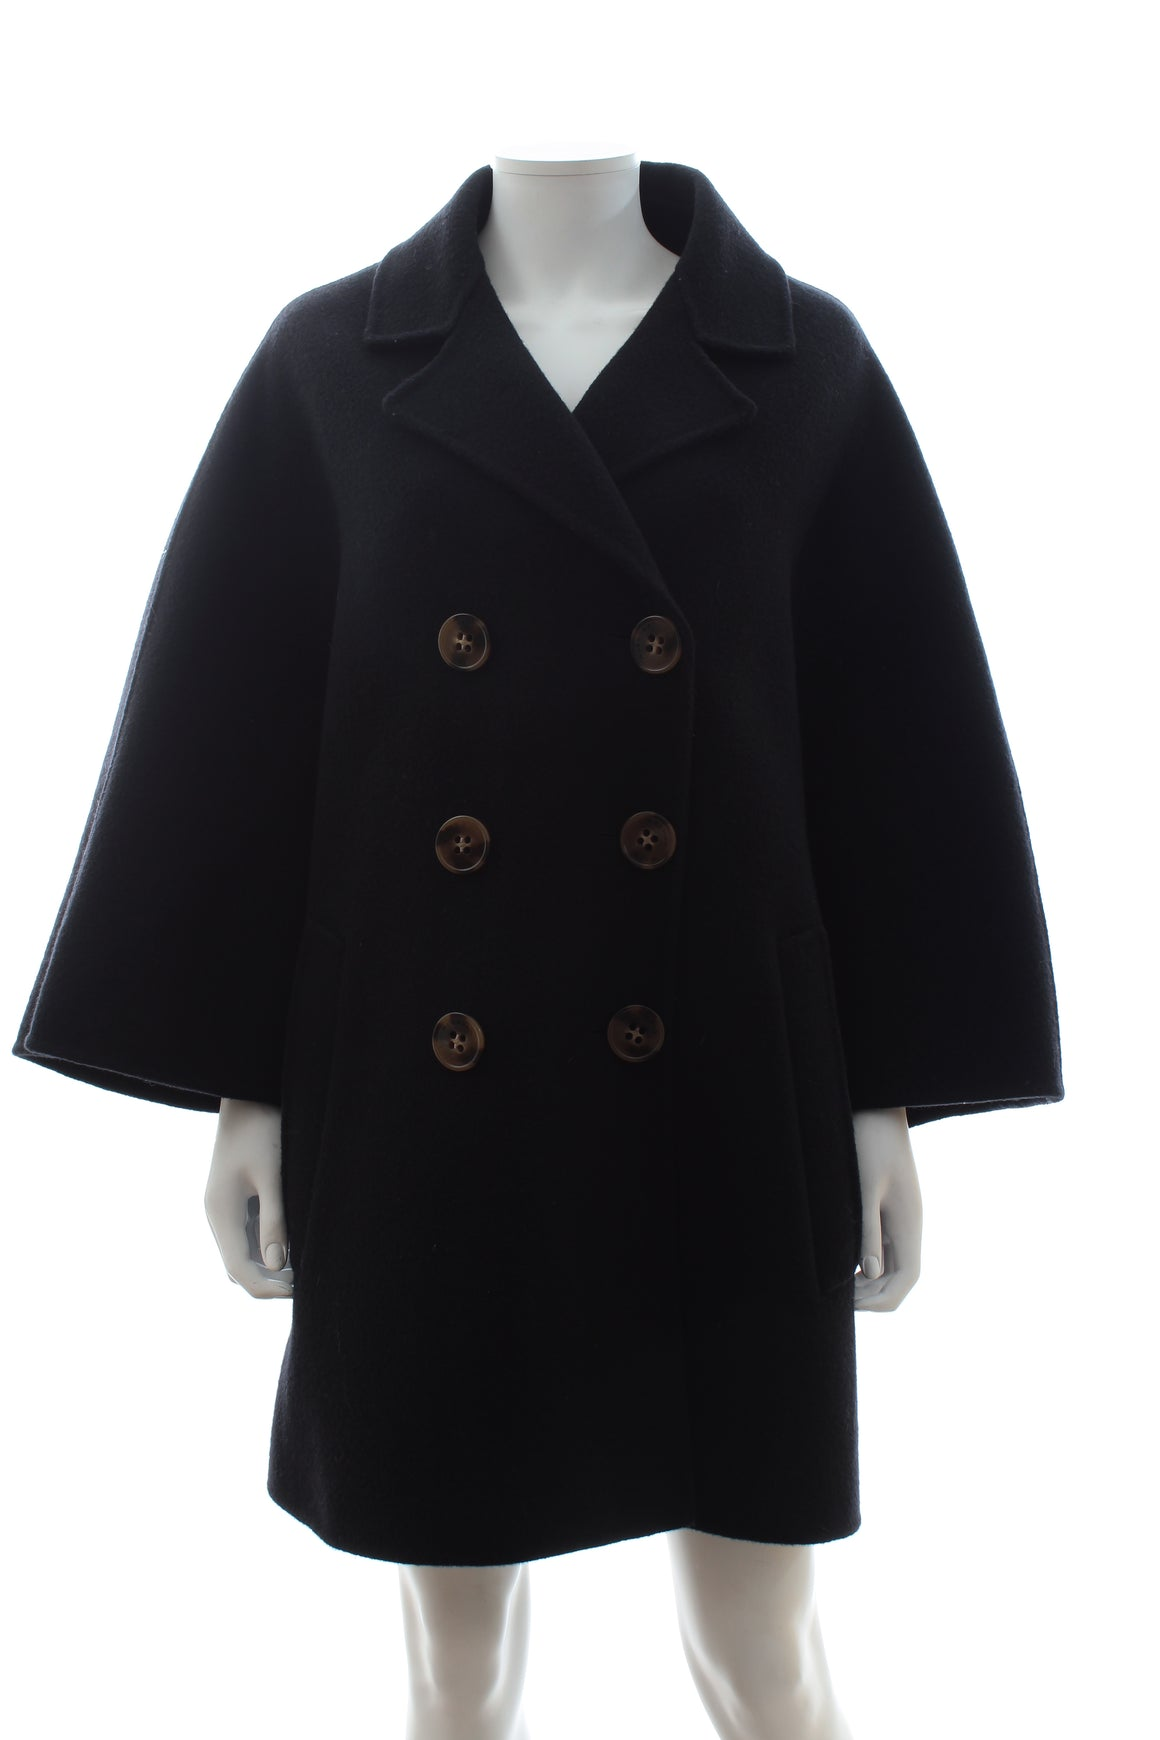 Burberry Prorsum Oversized Wool Felt Black Coat